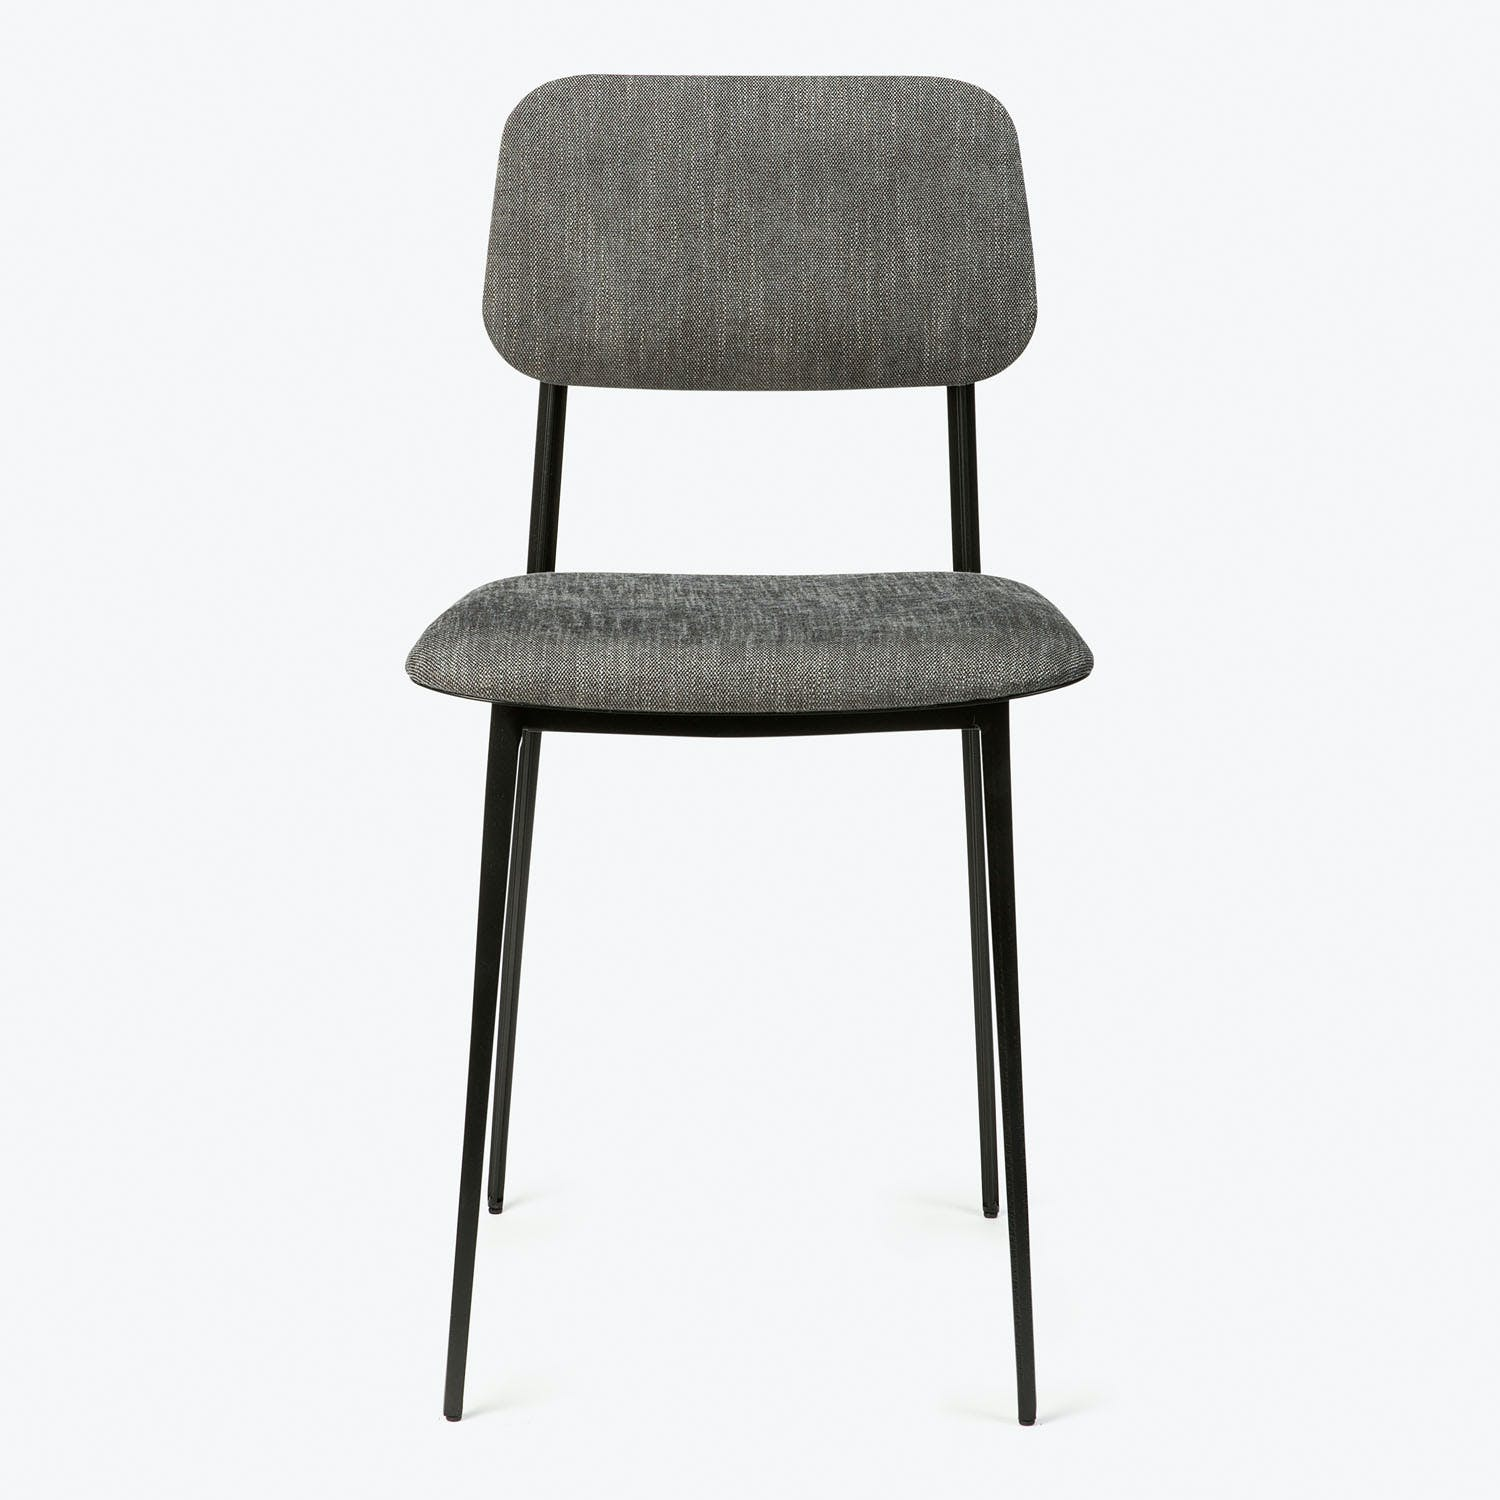 Ethnicraft Anders DC Dining Chair Dark Gray